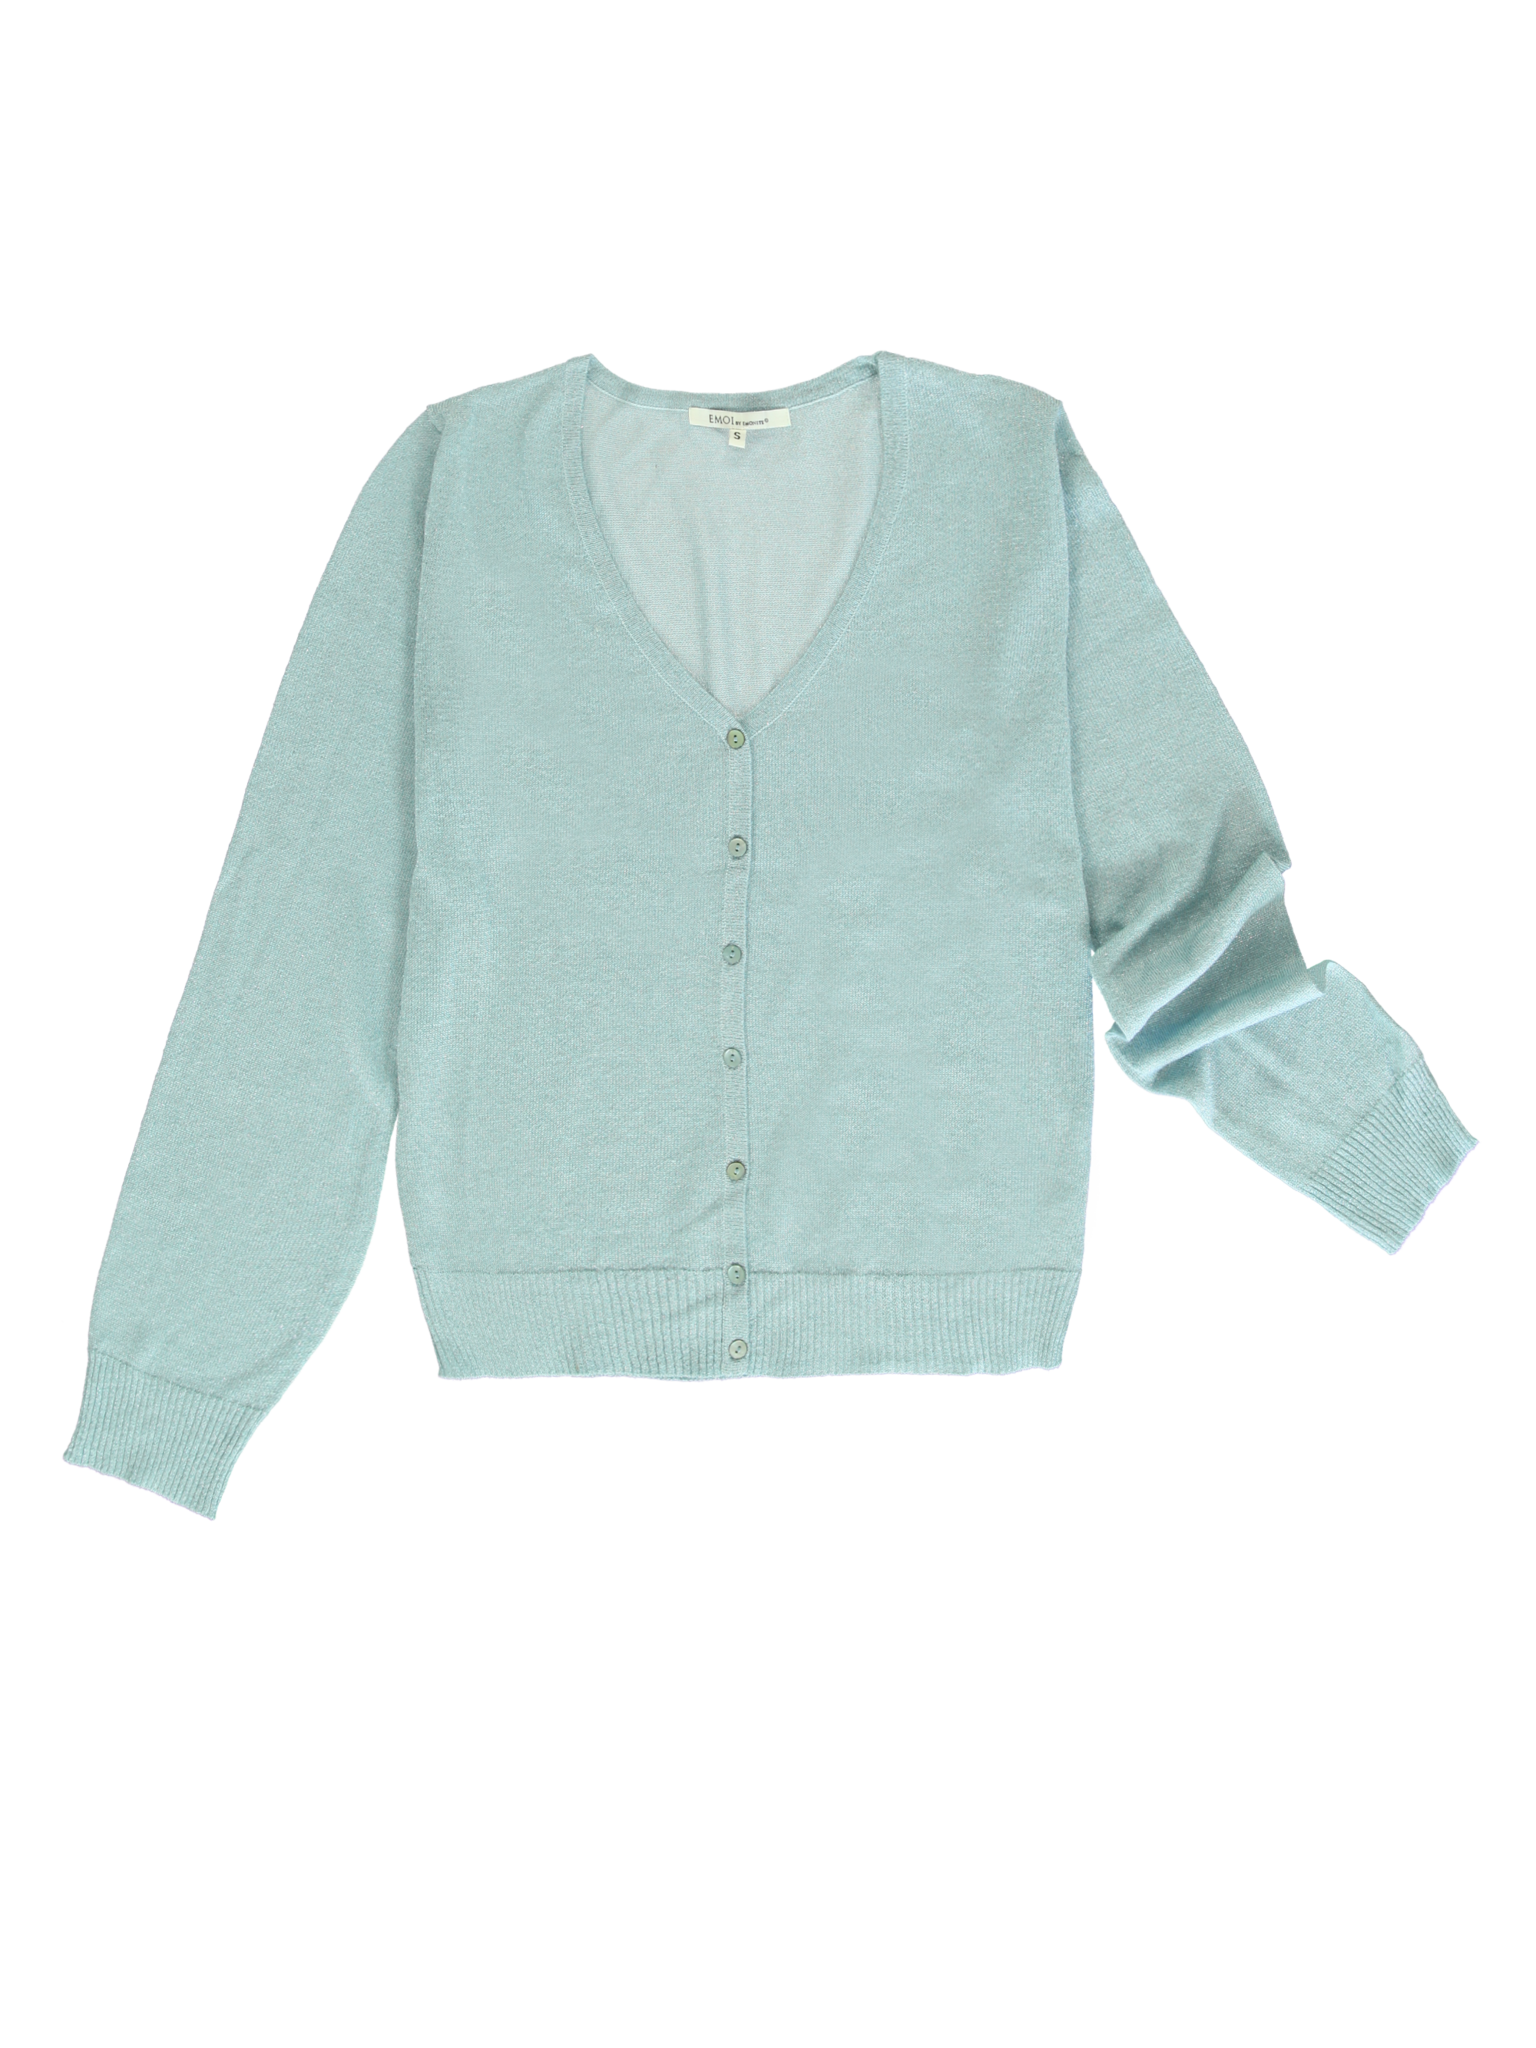 All Brands | Summerproducts Ladies | Cardigan Knitwear | 24 pcs/box